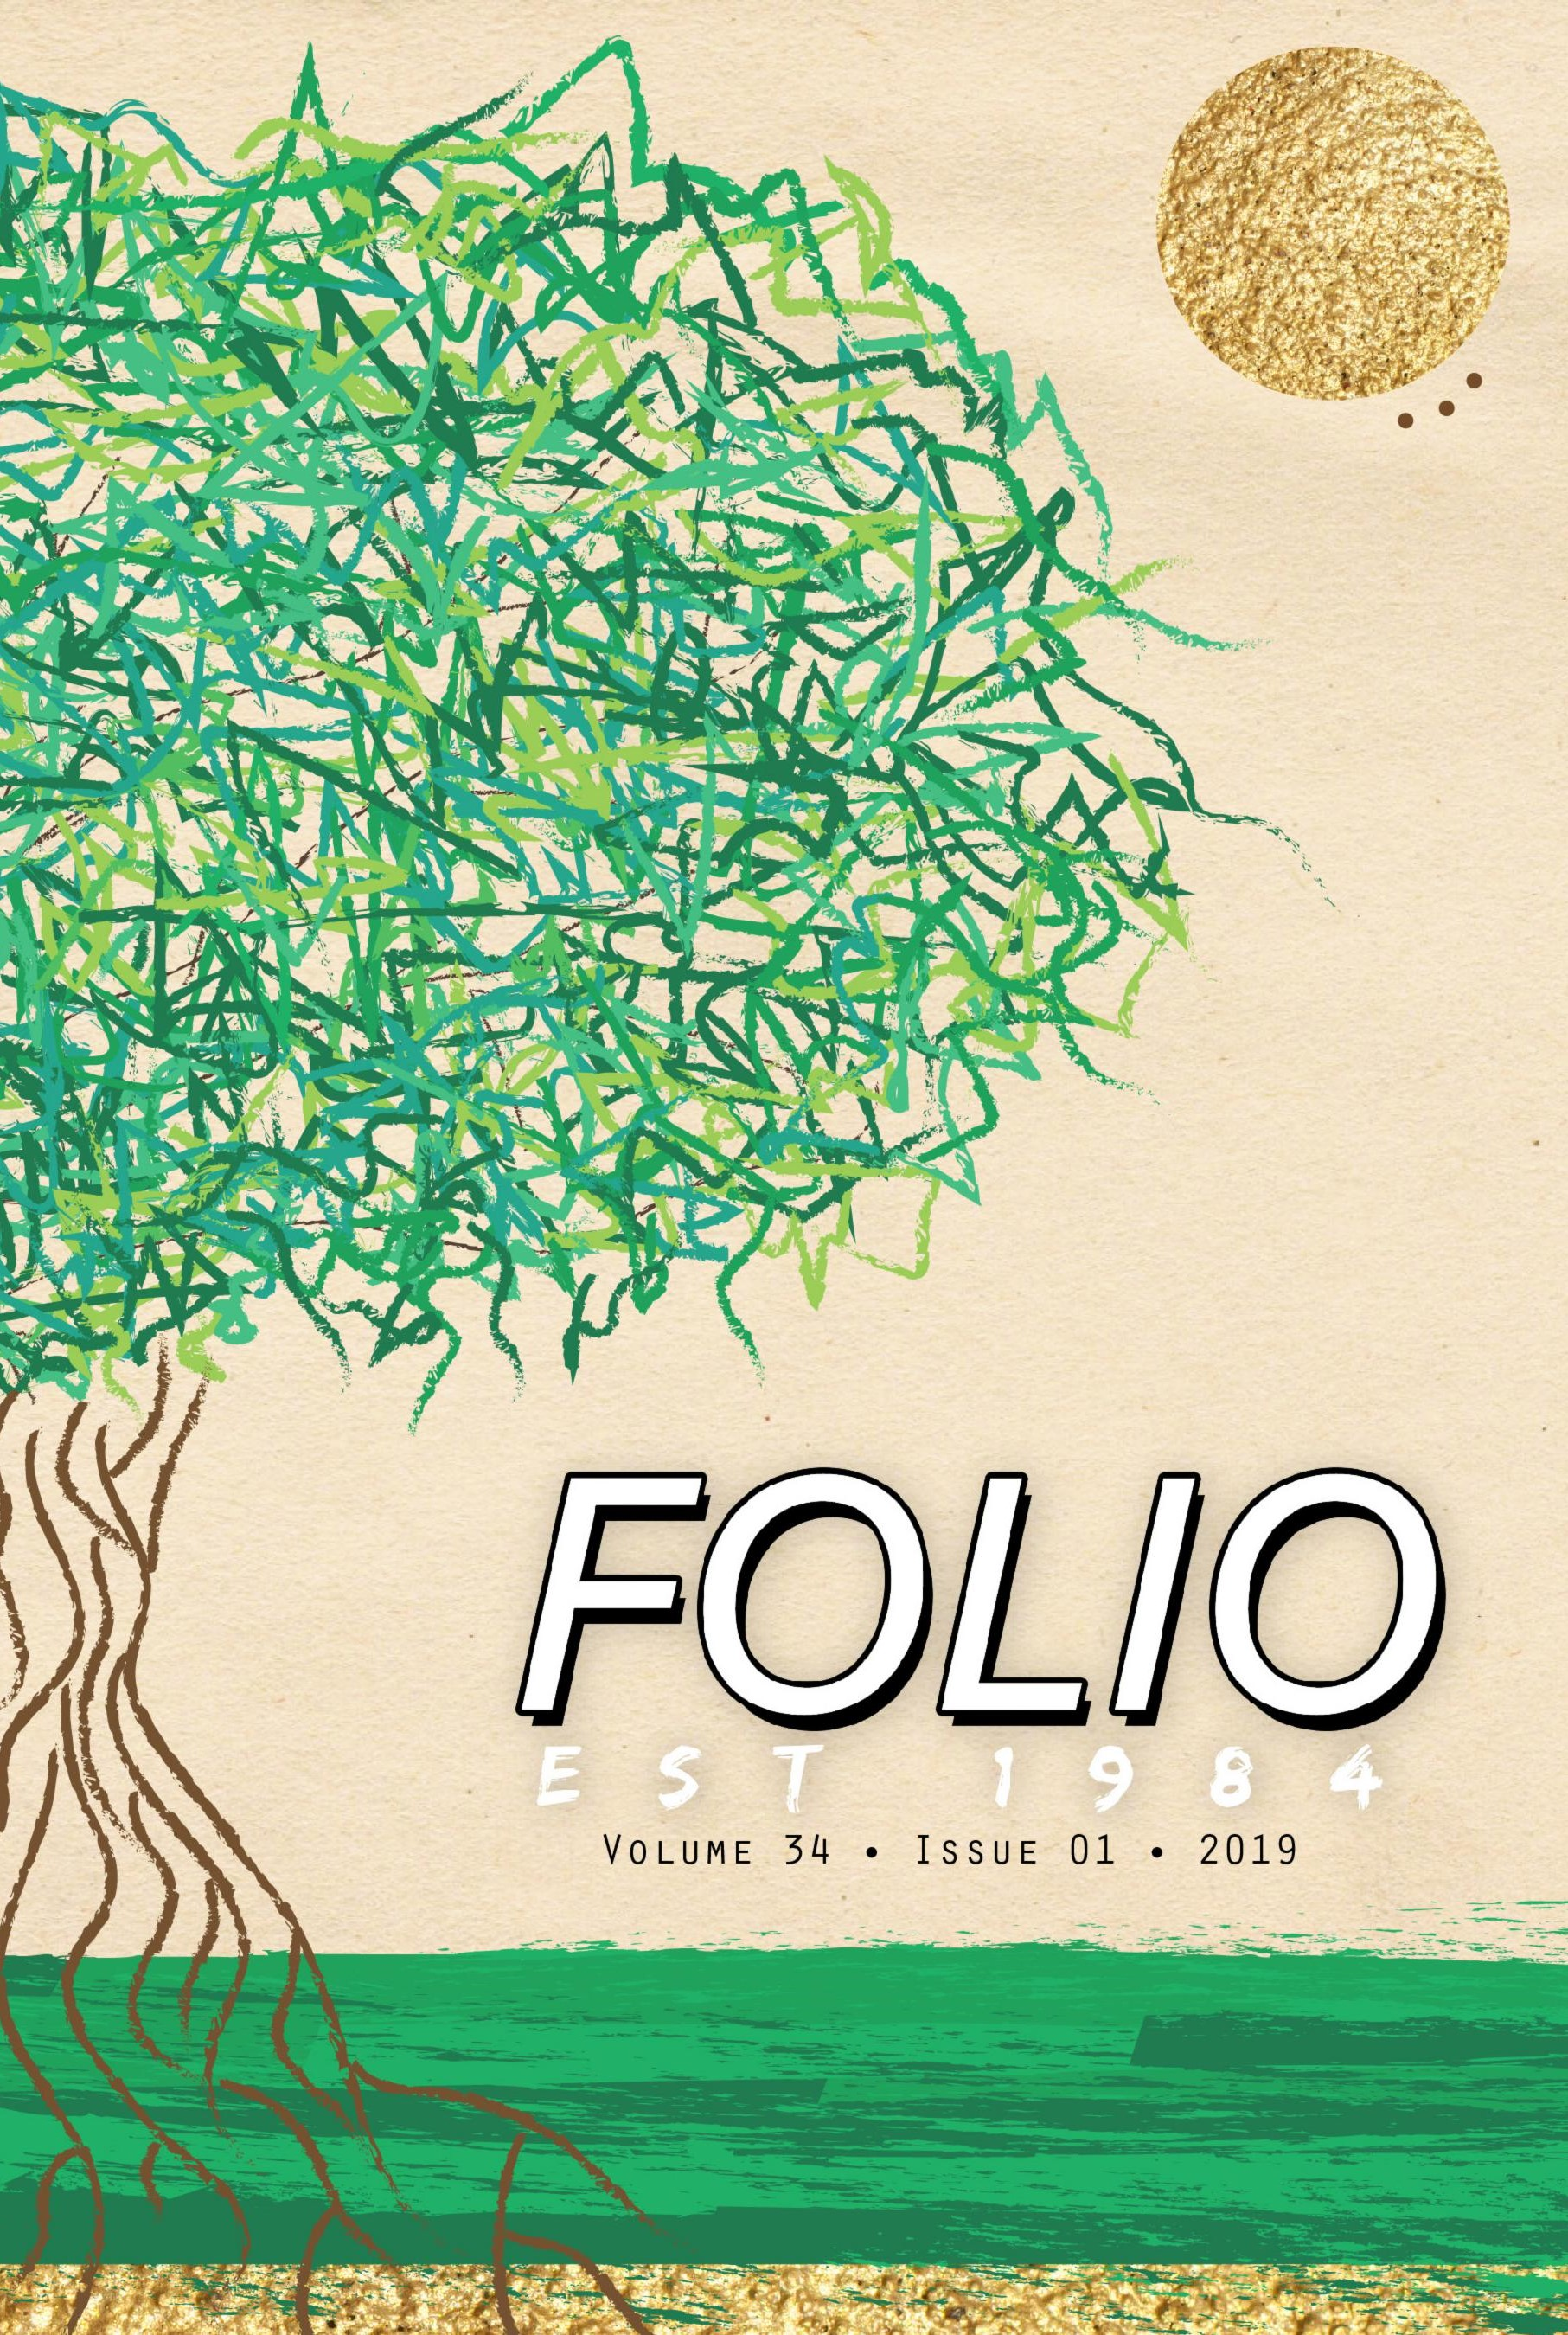 Folio Vol. 34 2019 Cover